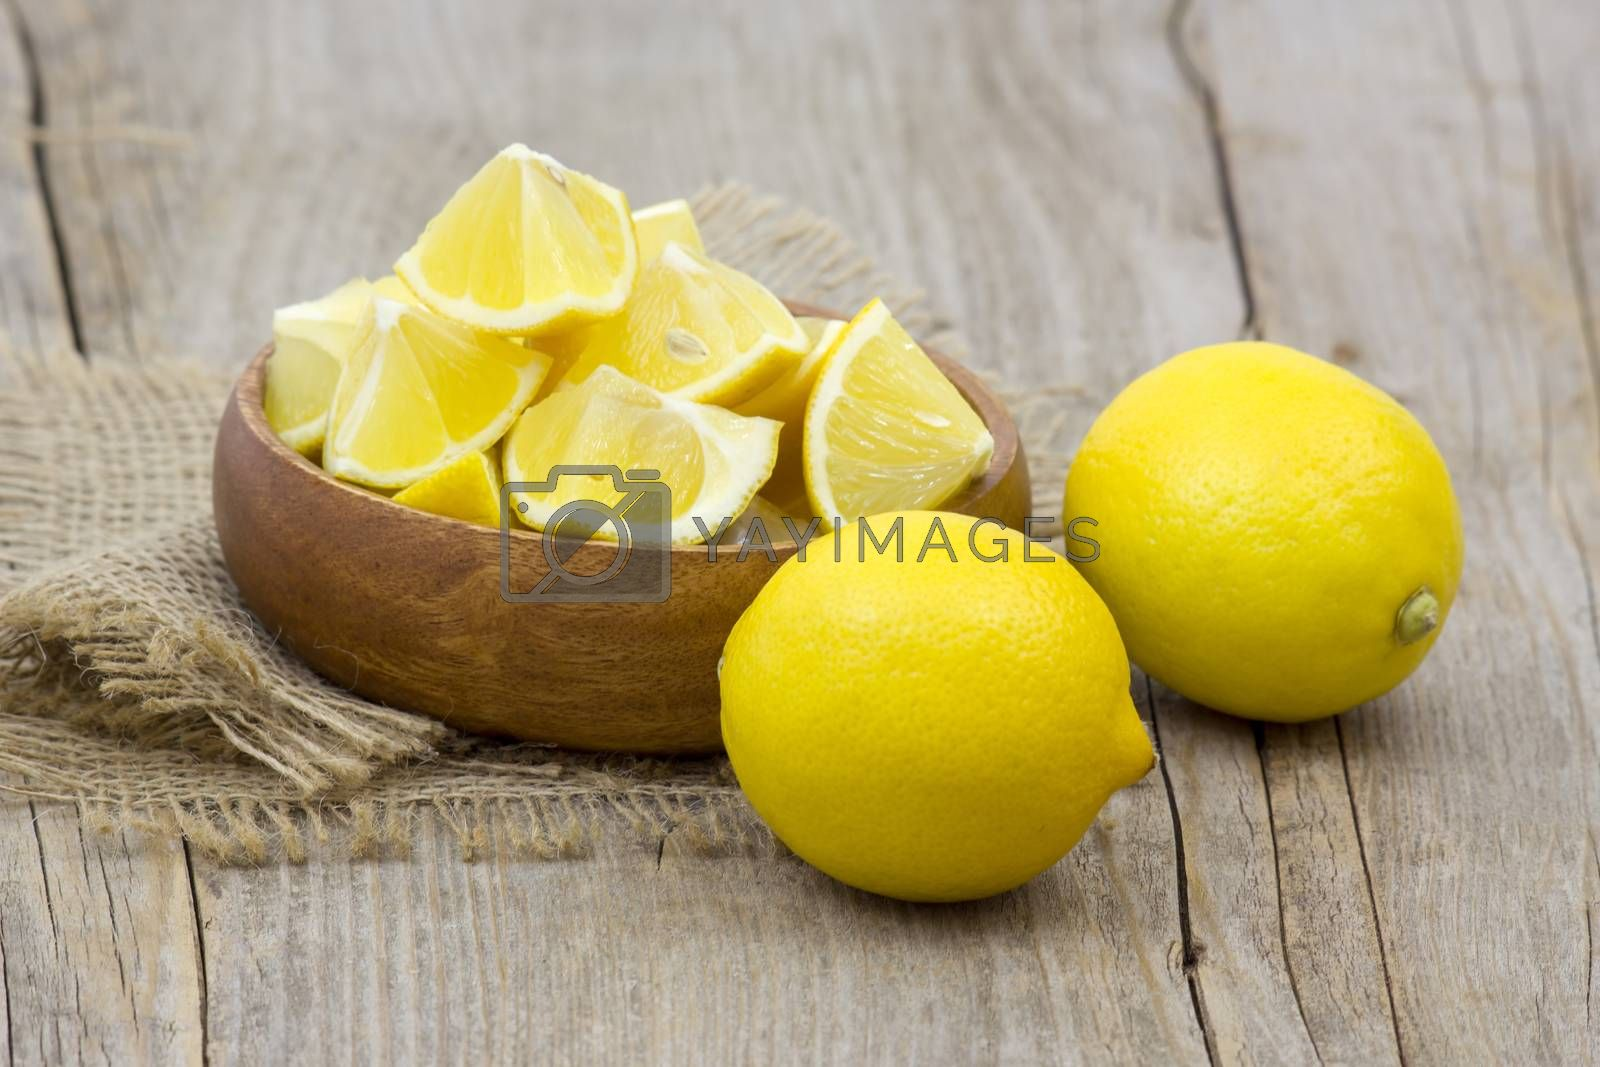 fresh lemons in a bowl on wooden background by miradrozdowski